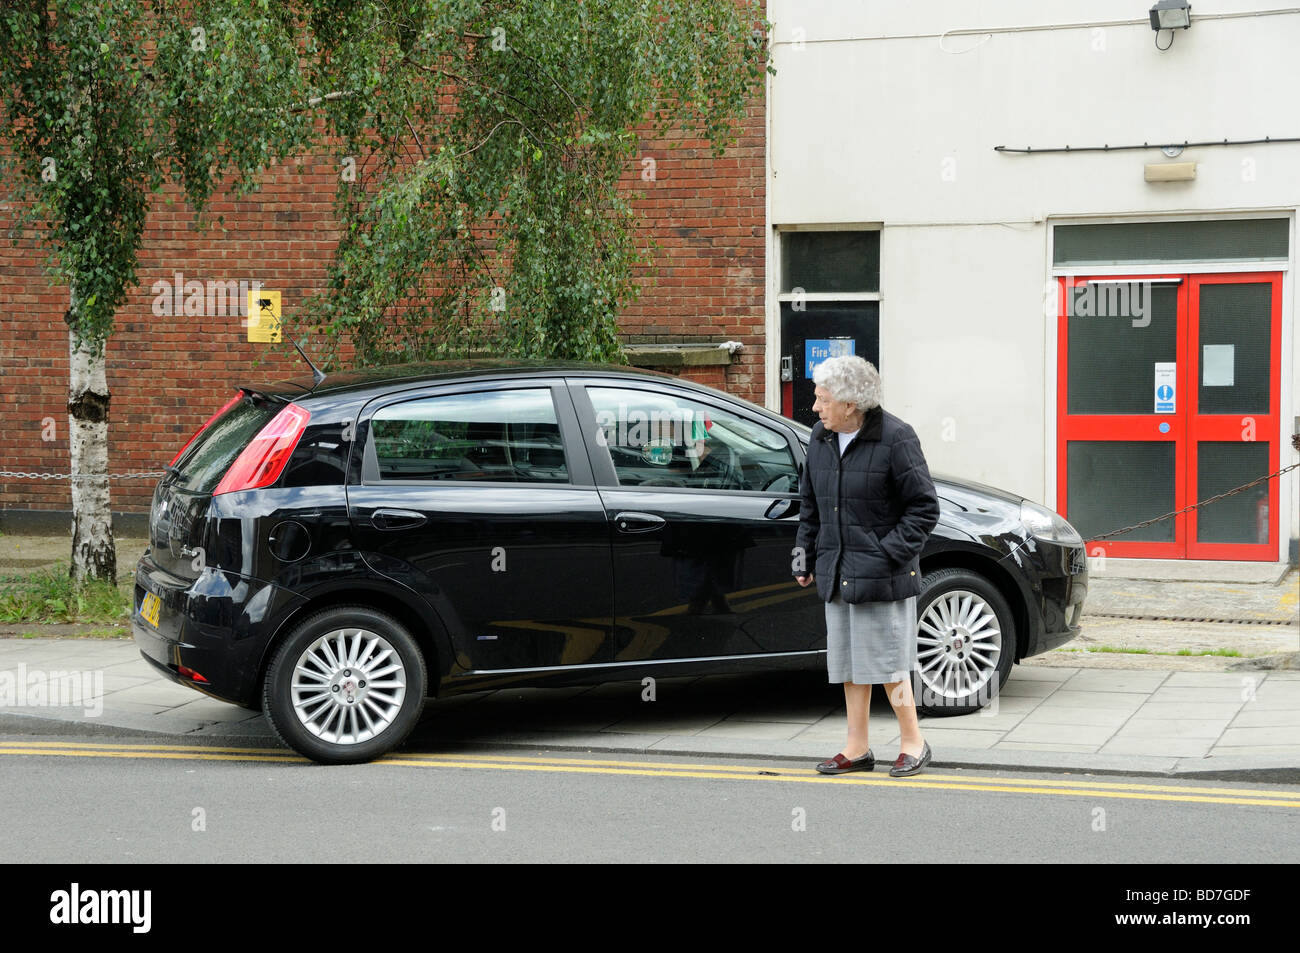 Elderly lady walks out into road as pavement is blocked by car Holloway London England UK - Stock Image